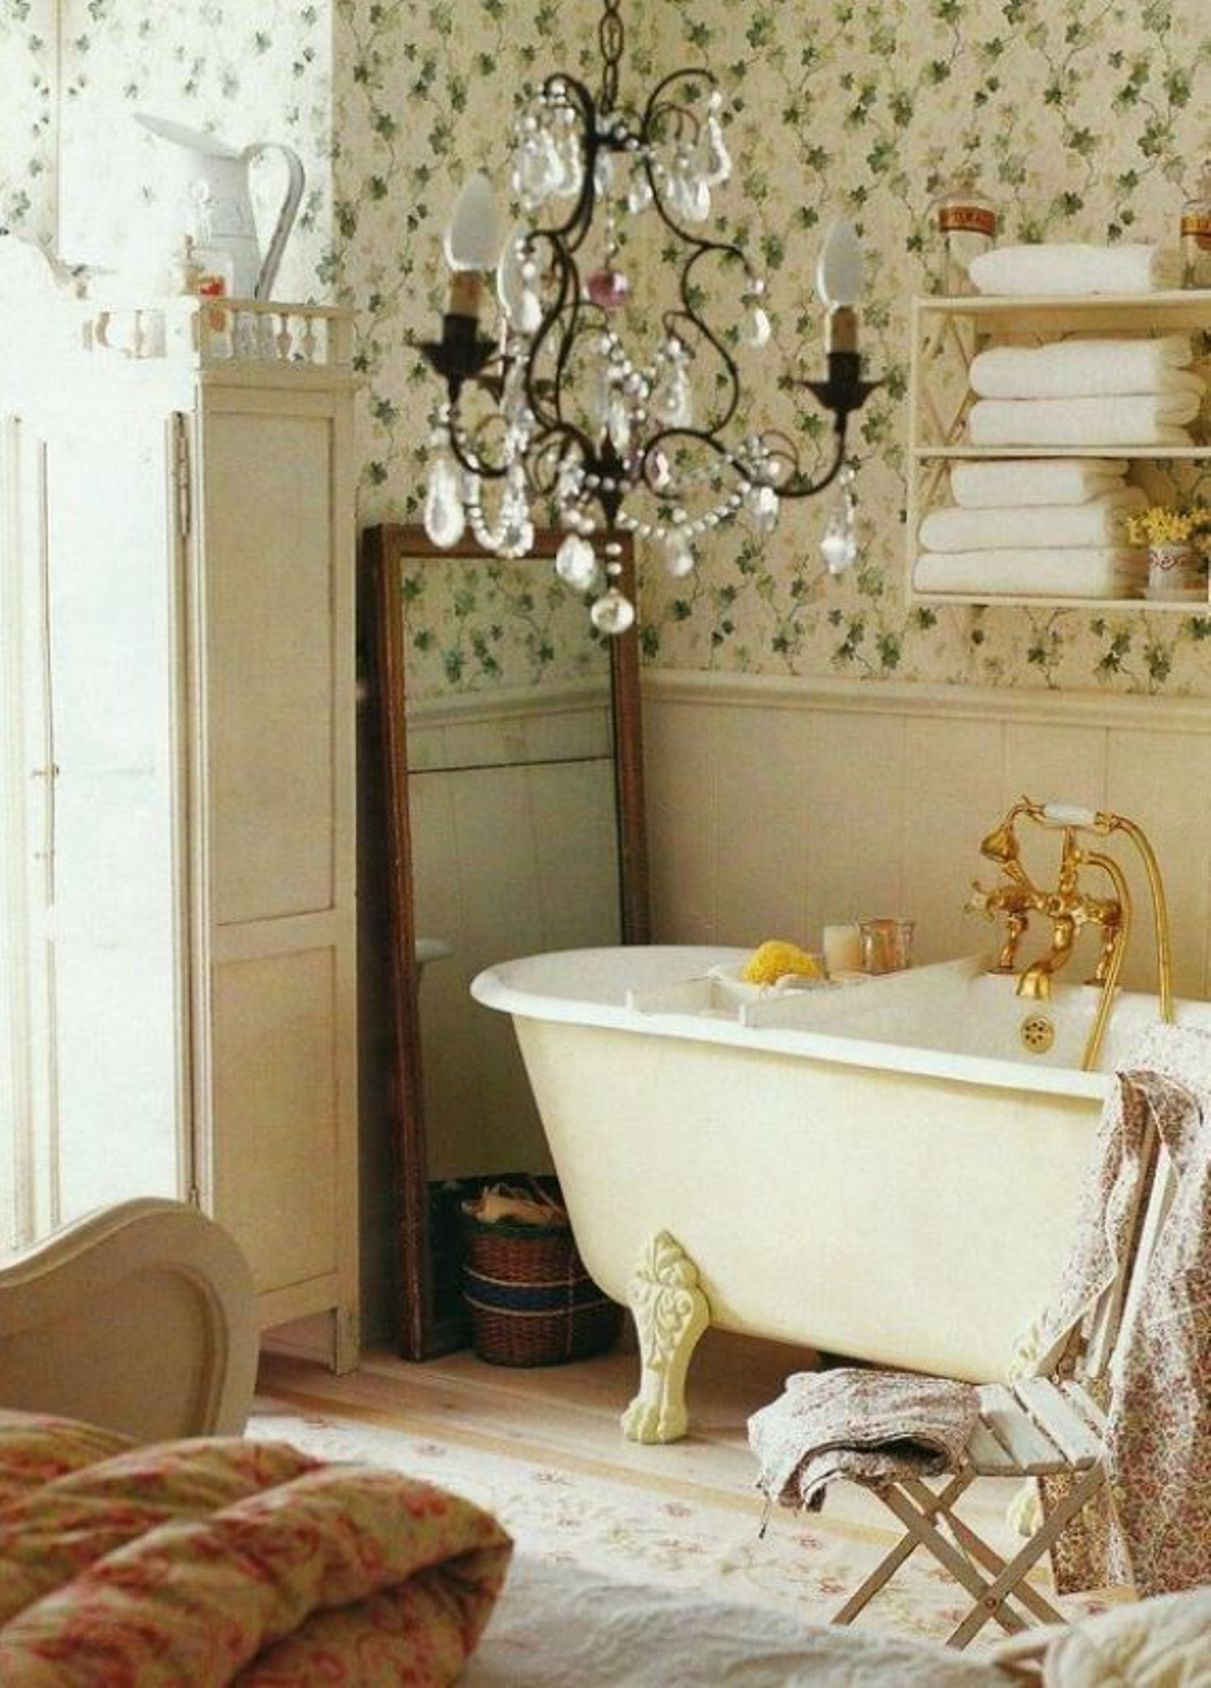 30 shabby chic bathroom design ideas to get inspired for Bathroom decor ideas images